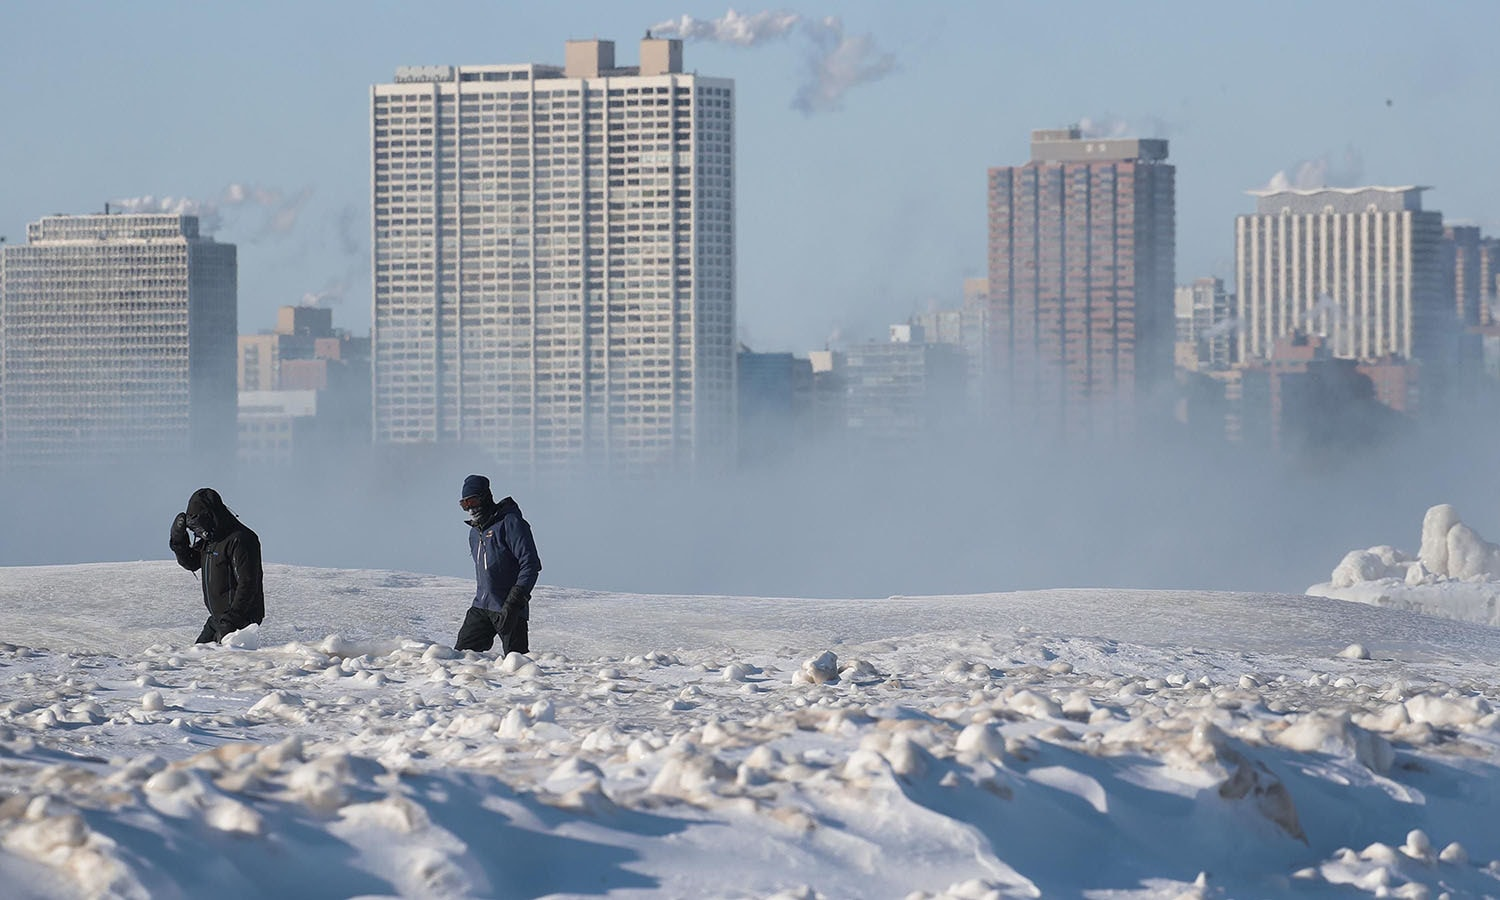 People walk along North Avenue Beach despite a temperature around -20 degrees. — AFP